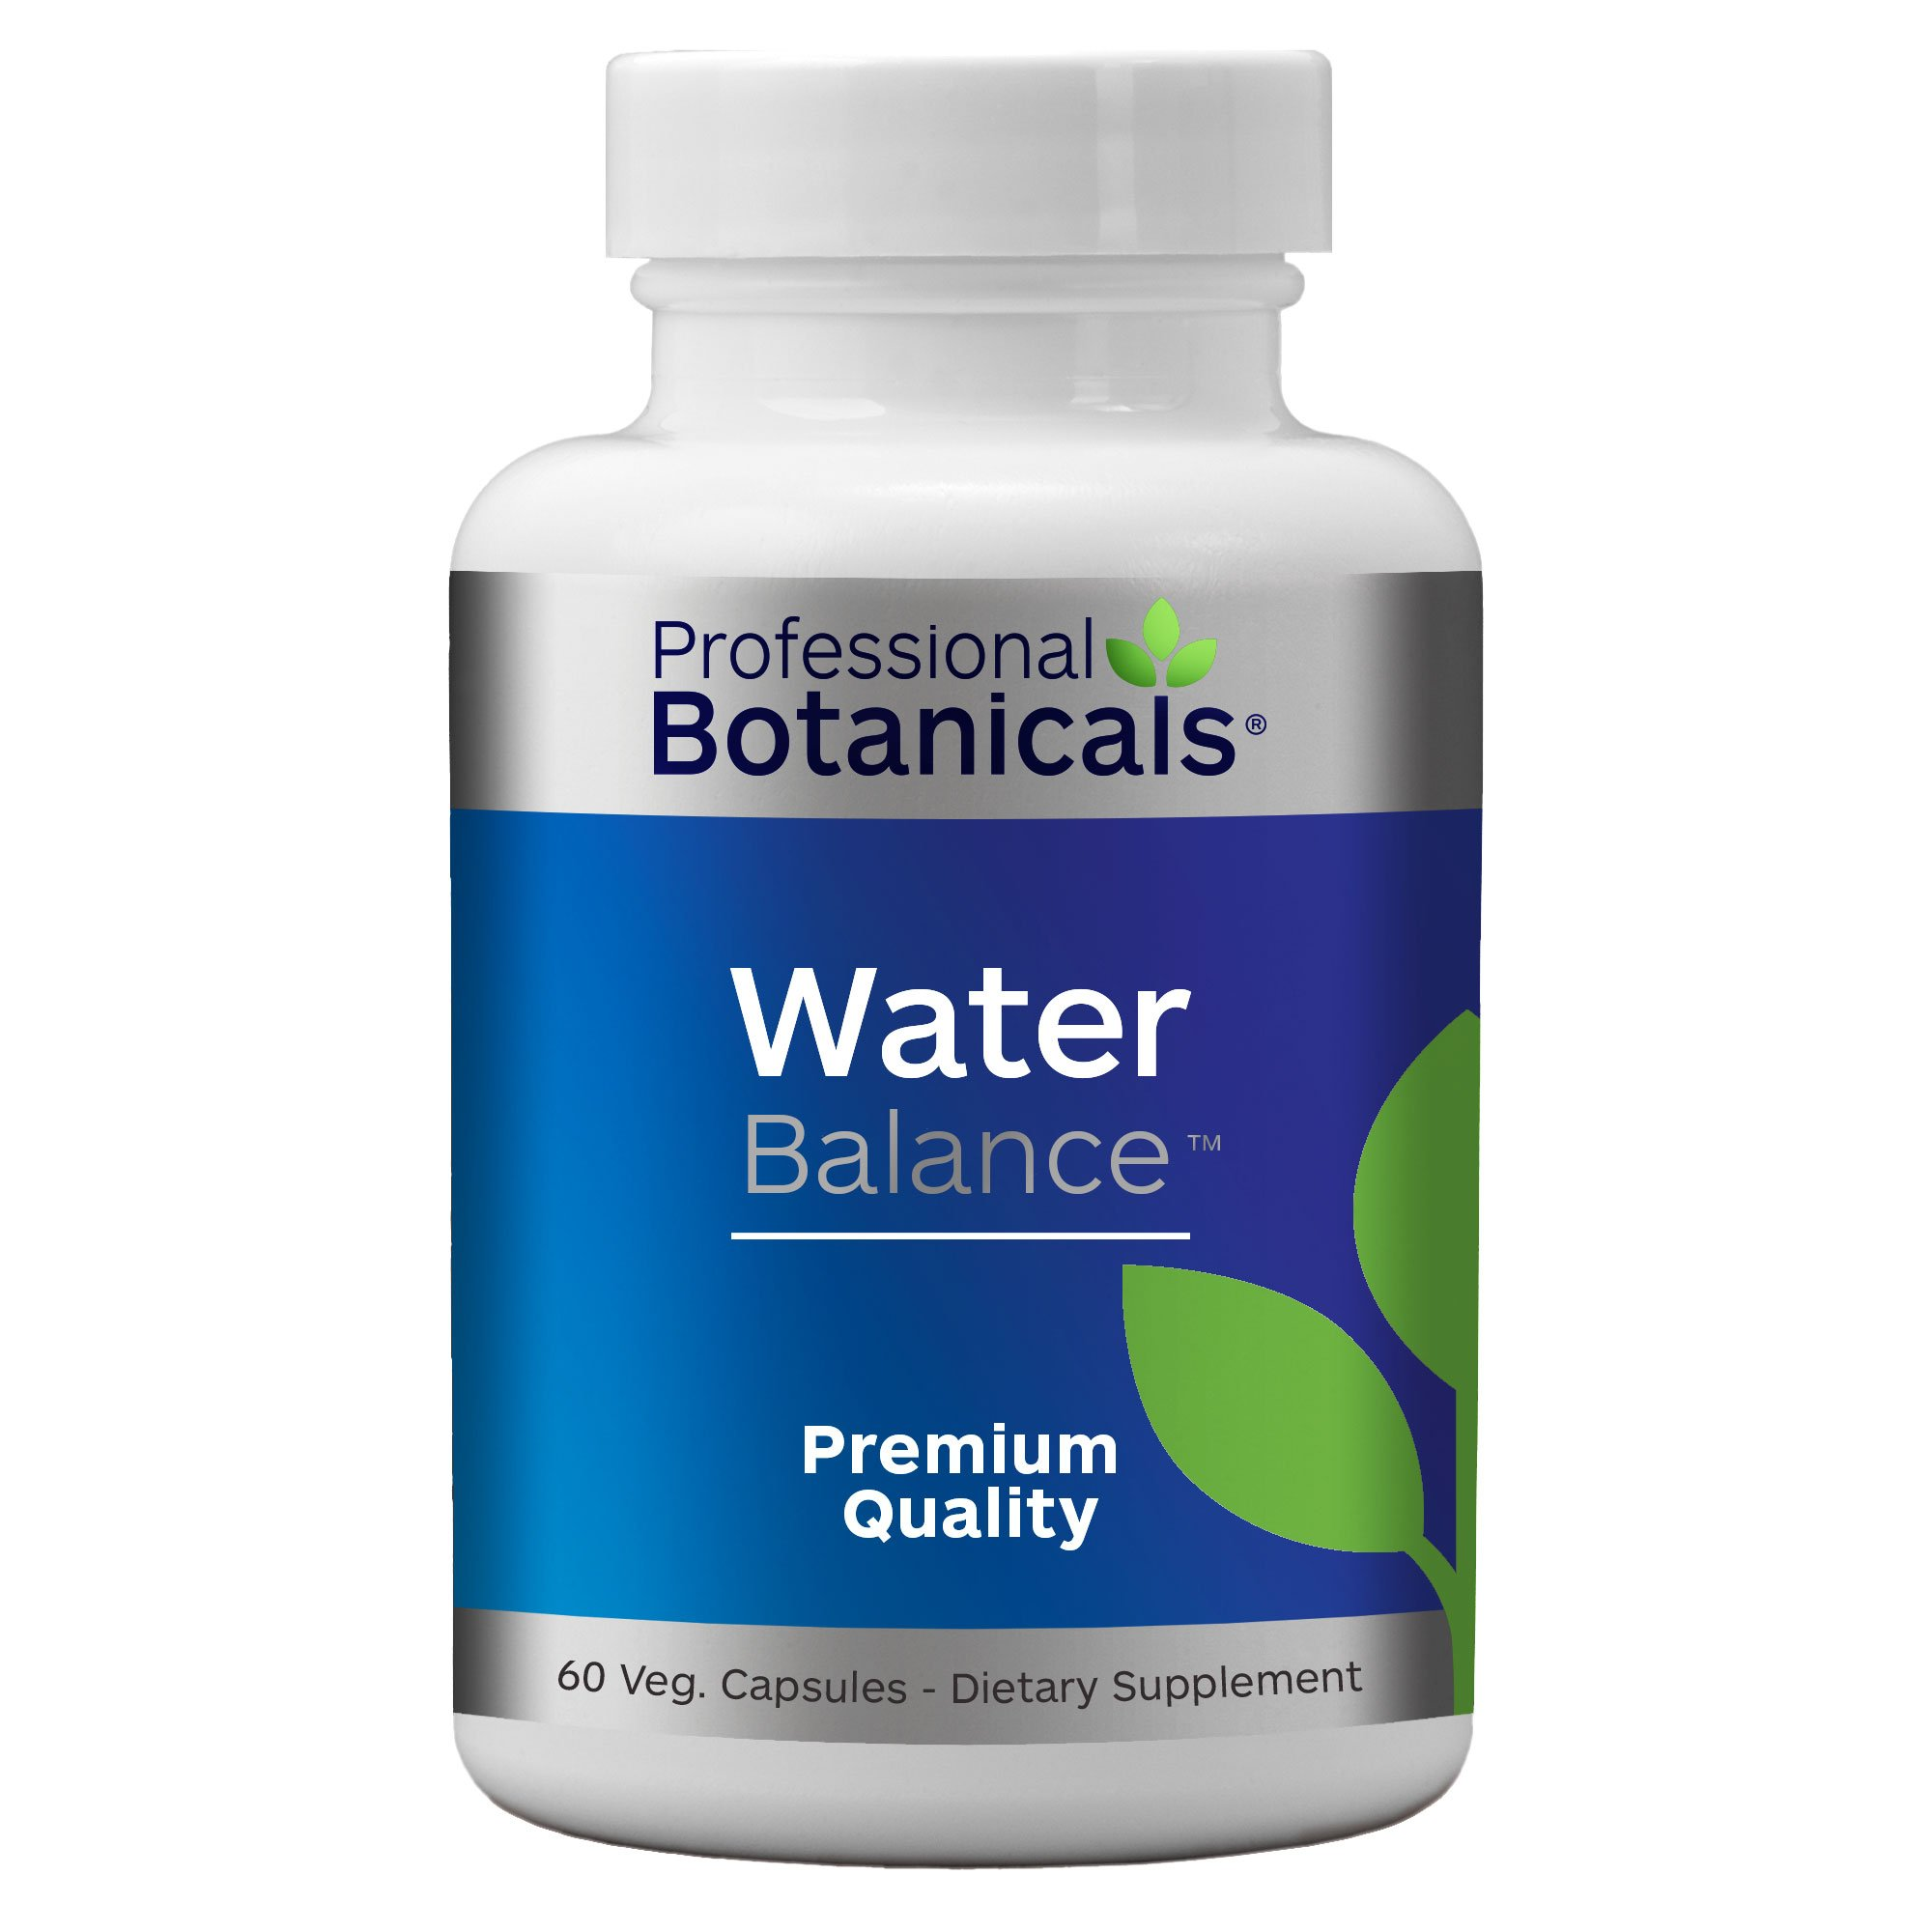 Professional Botanicals Water Balance - Supports Health Bladder and Kidney Functions - 60 Vegetarian Capsules